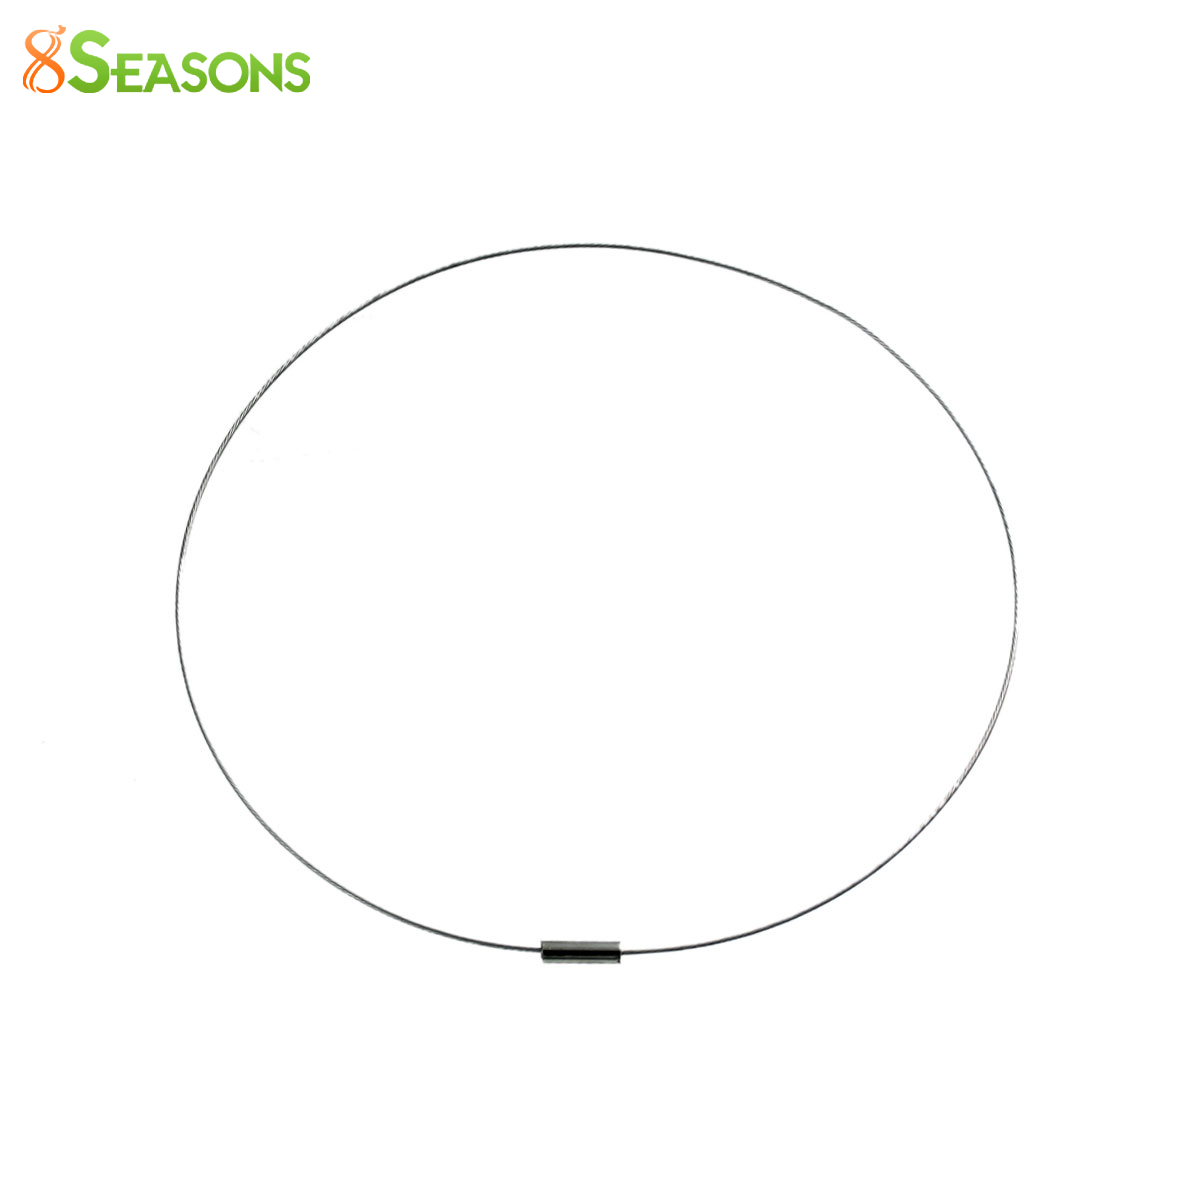 8SEASONS Copper Wire Collar Neck Necklace Silver Tone Color With Magnetic Clasp 46.5cm(18 2/8